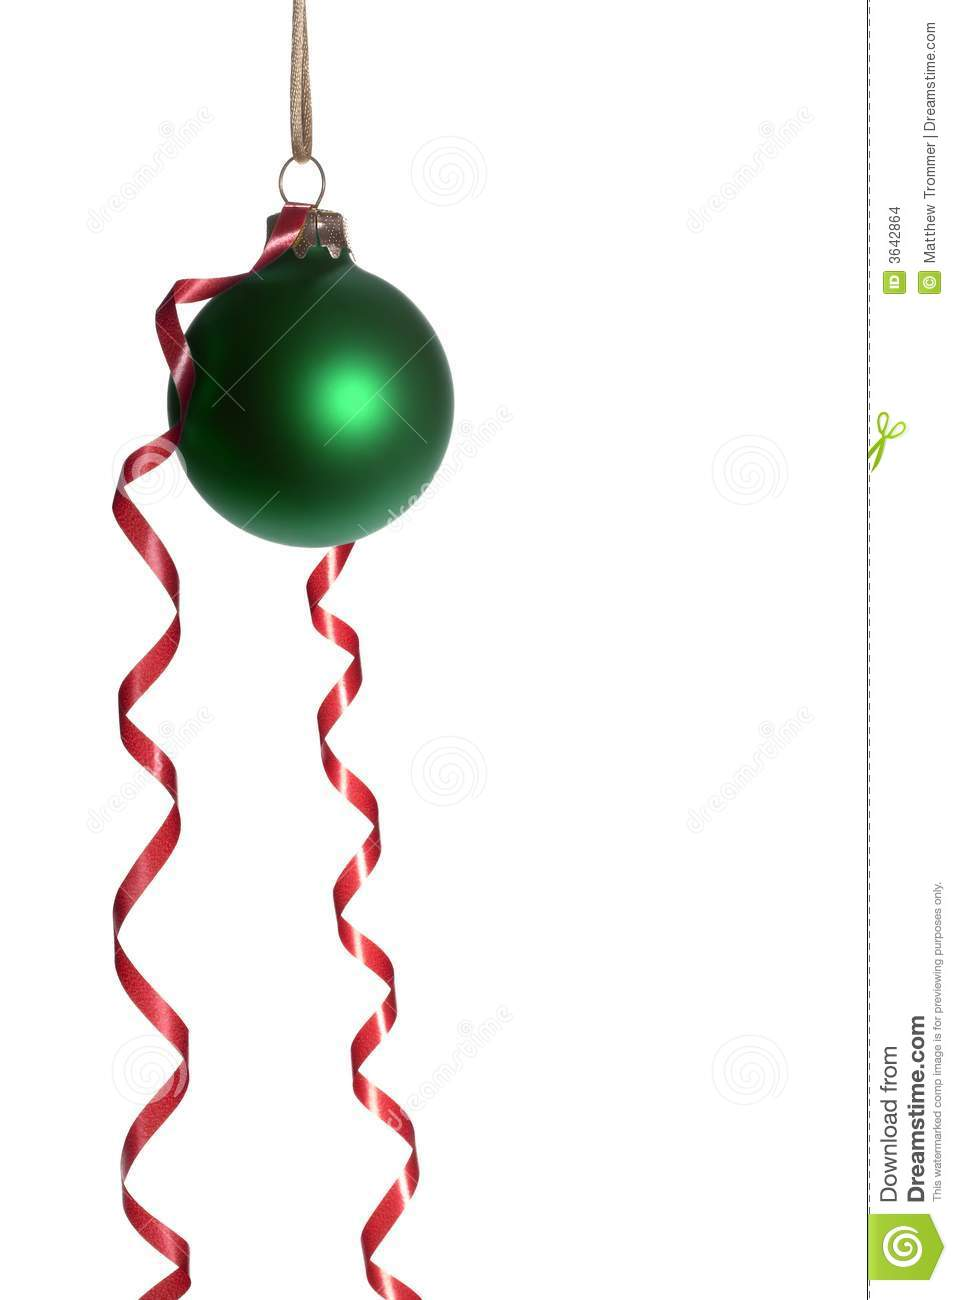 Hanging green christmas ornaments with red ribbon stock photo image 3642864 - Hanging christmas ornaments ...